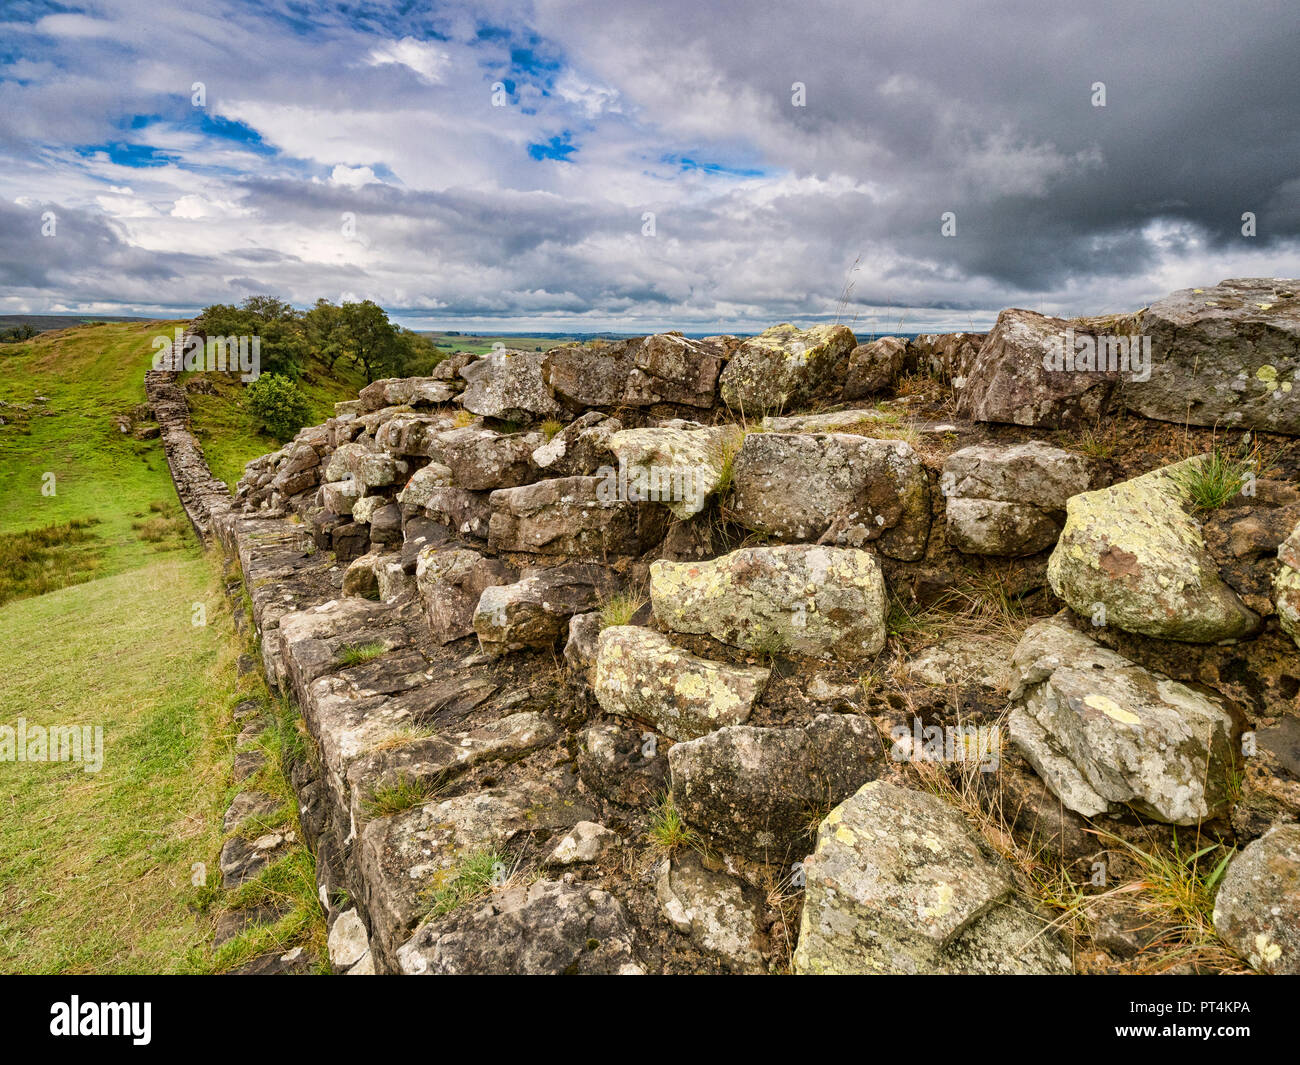 Hadrian's Wall near Walltown Crags, Northumberland, UK, on a moody summer day. Stock Photo